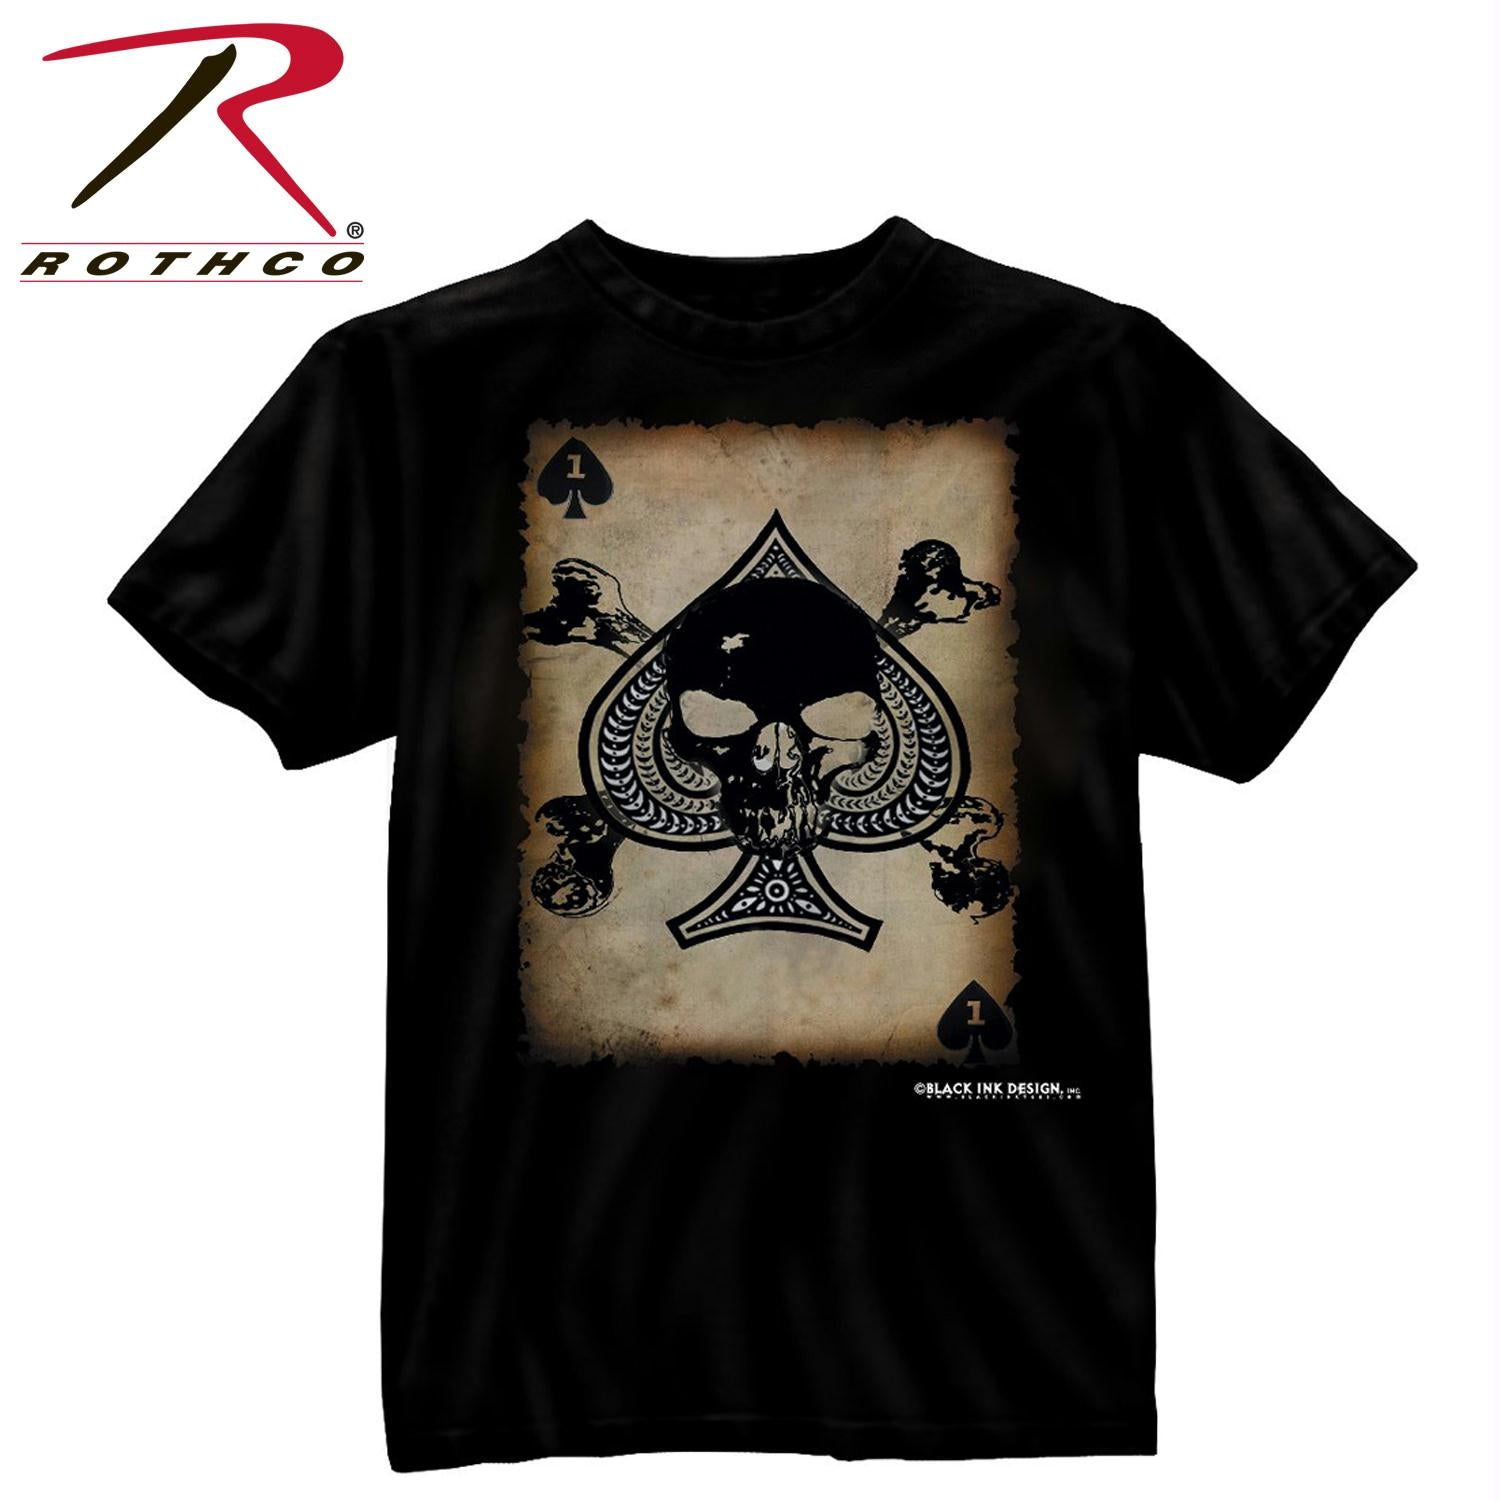 Black Ink 'Death Card' T-Shirt - S